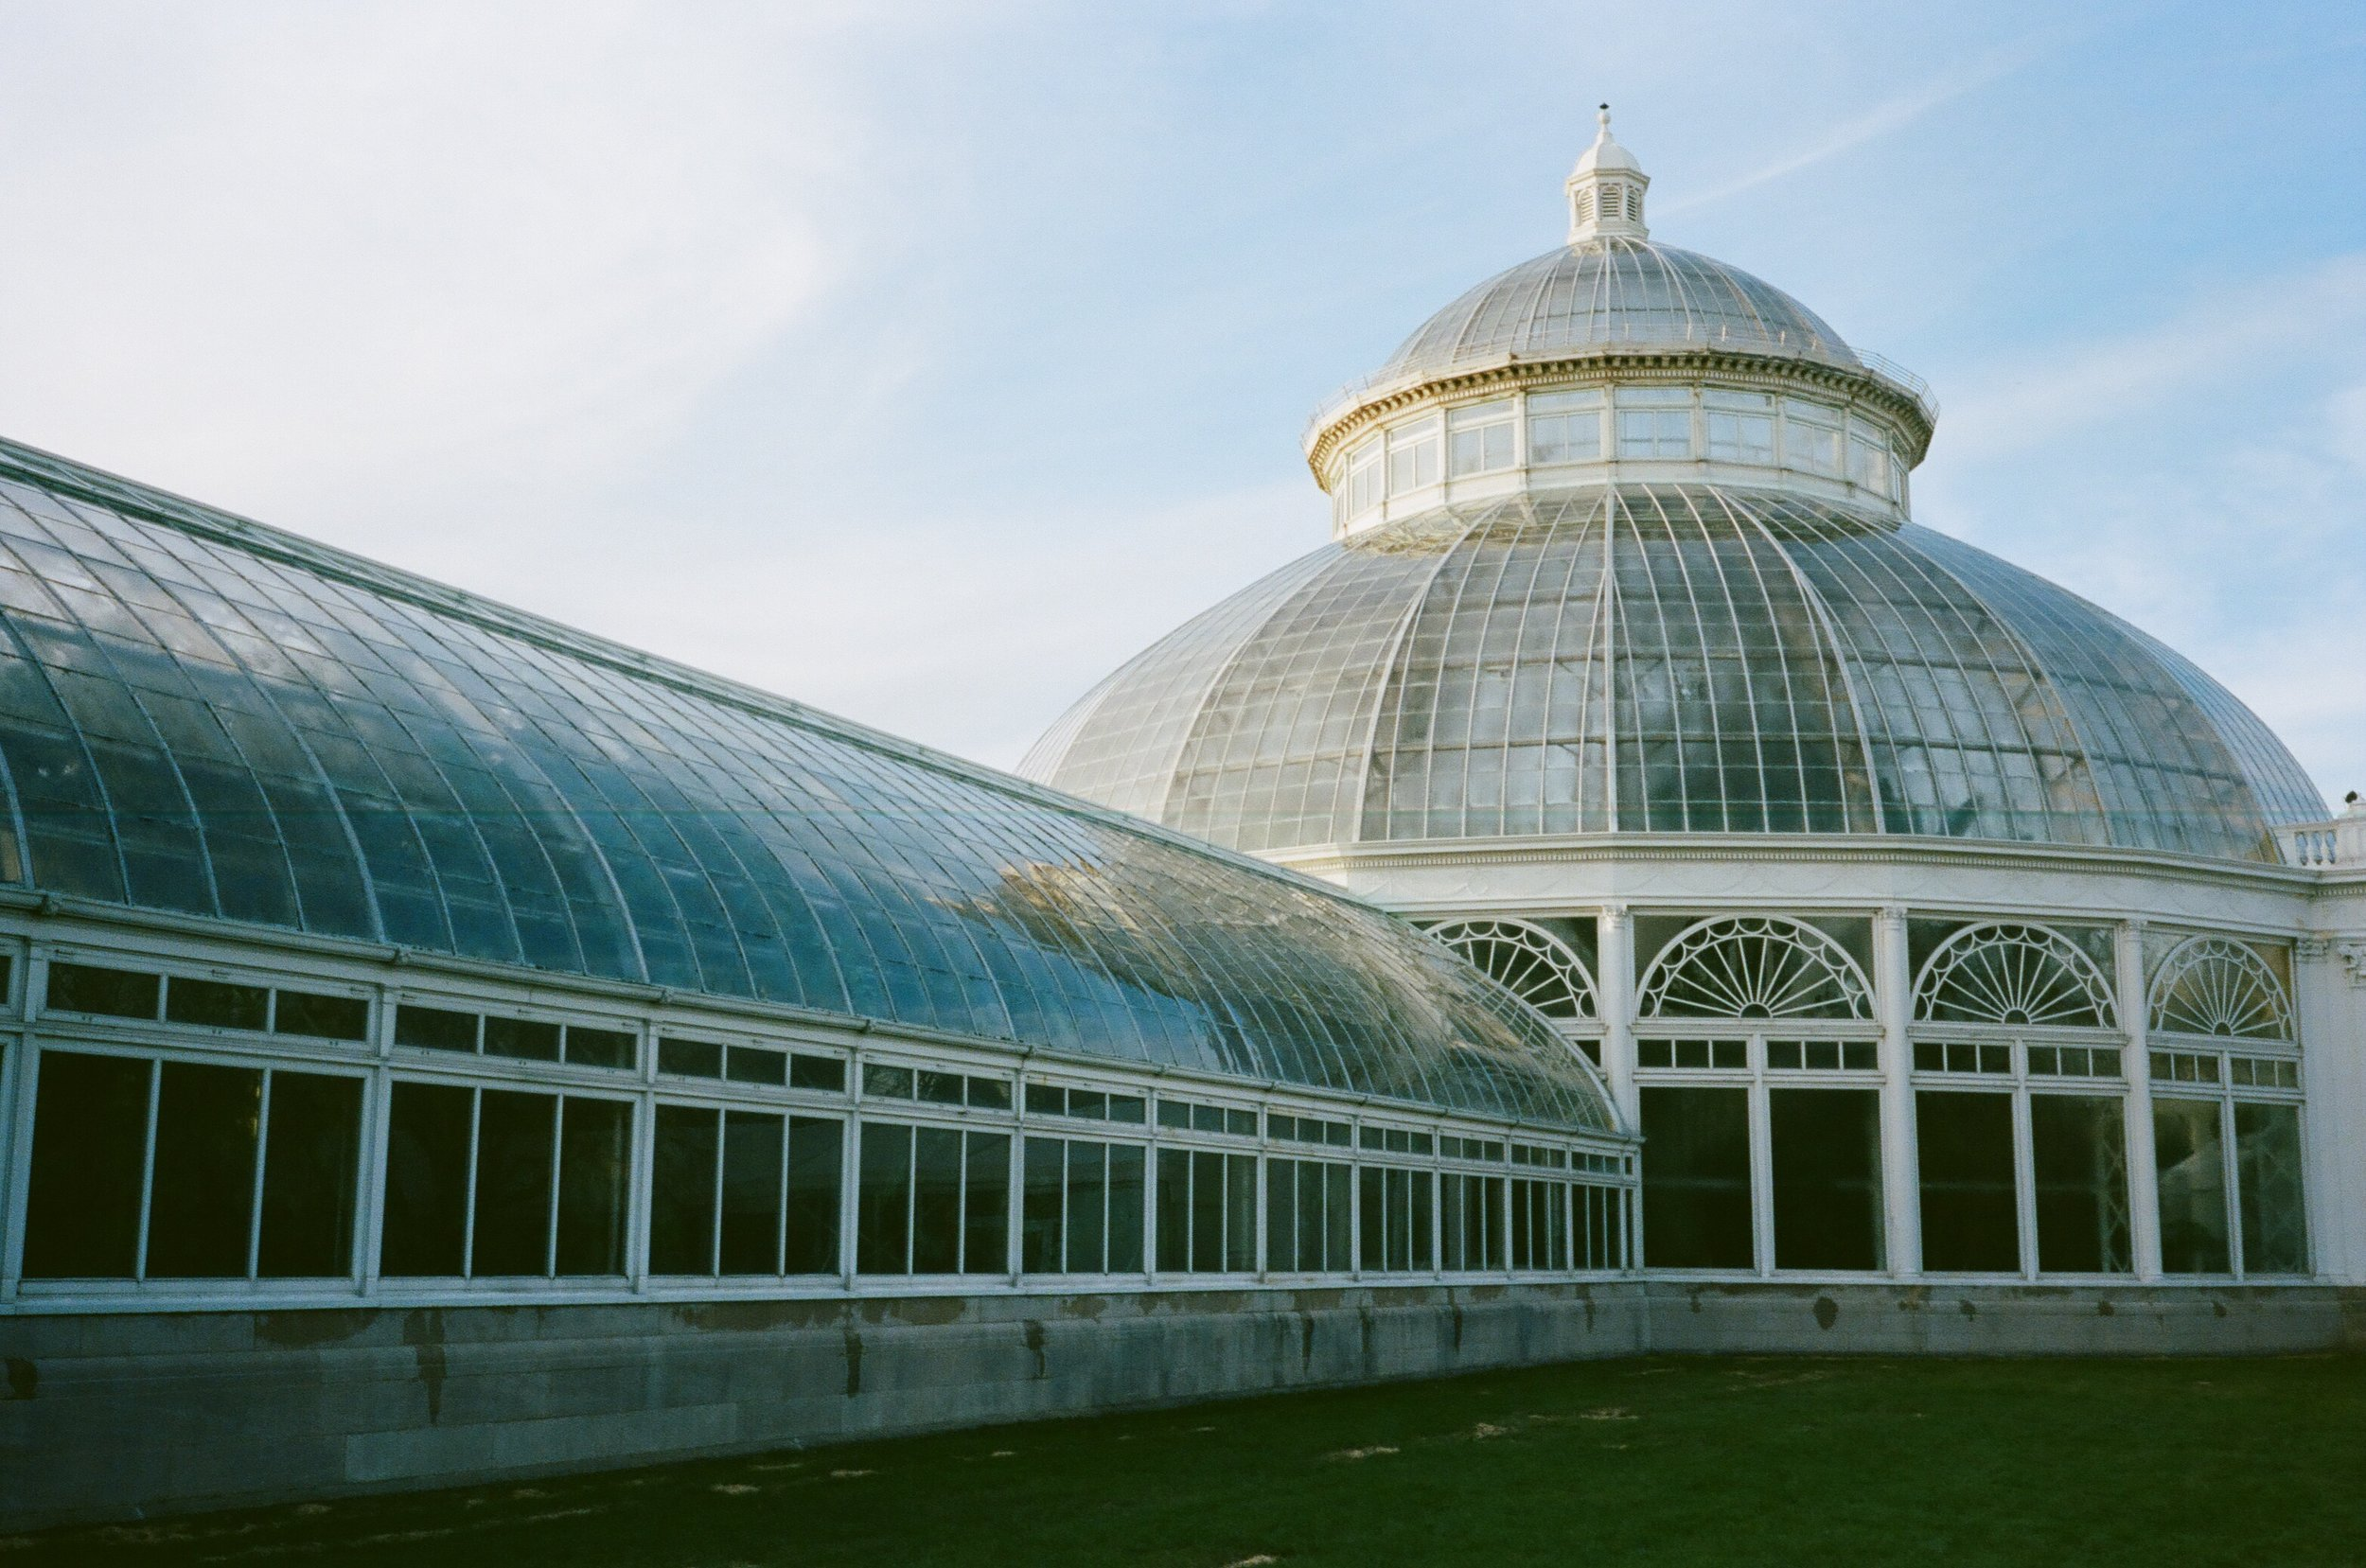 #949: New York Botanical Garden